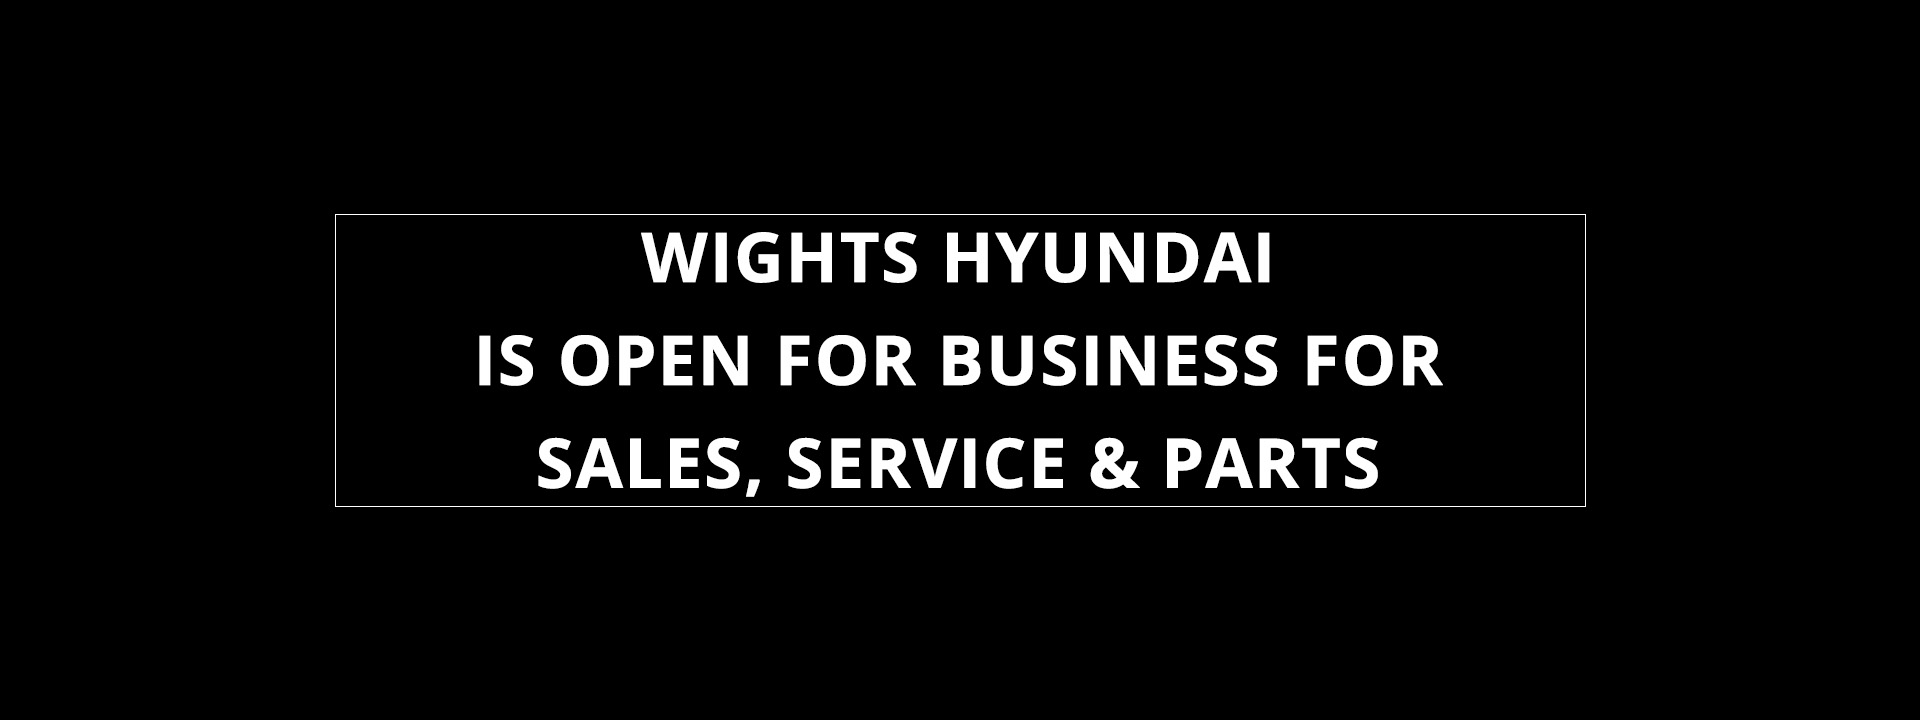 Wights Hyundai - We're Open For Business